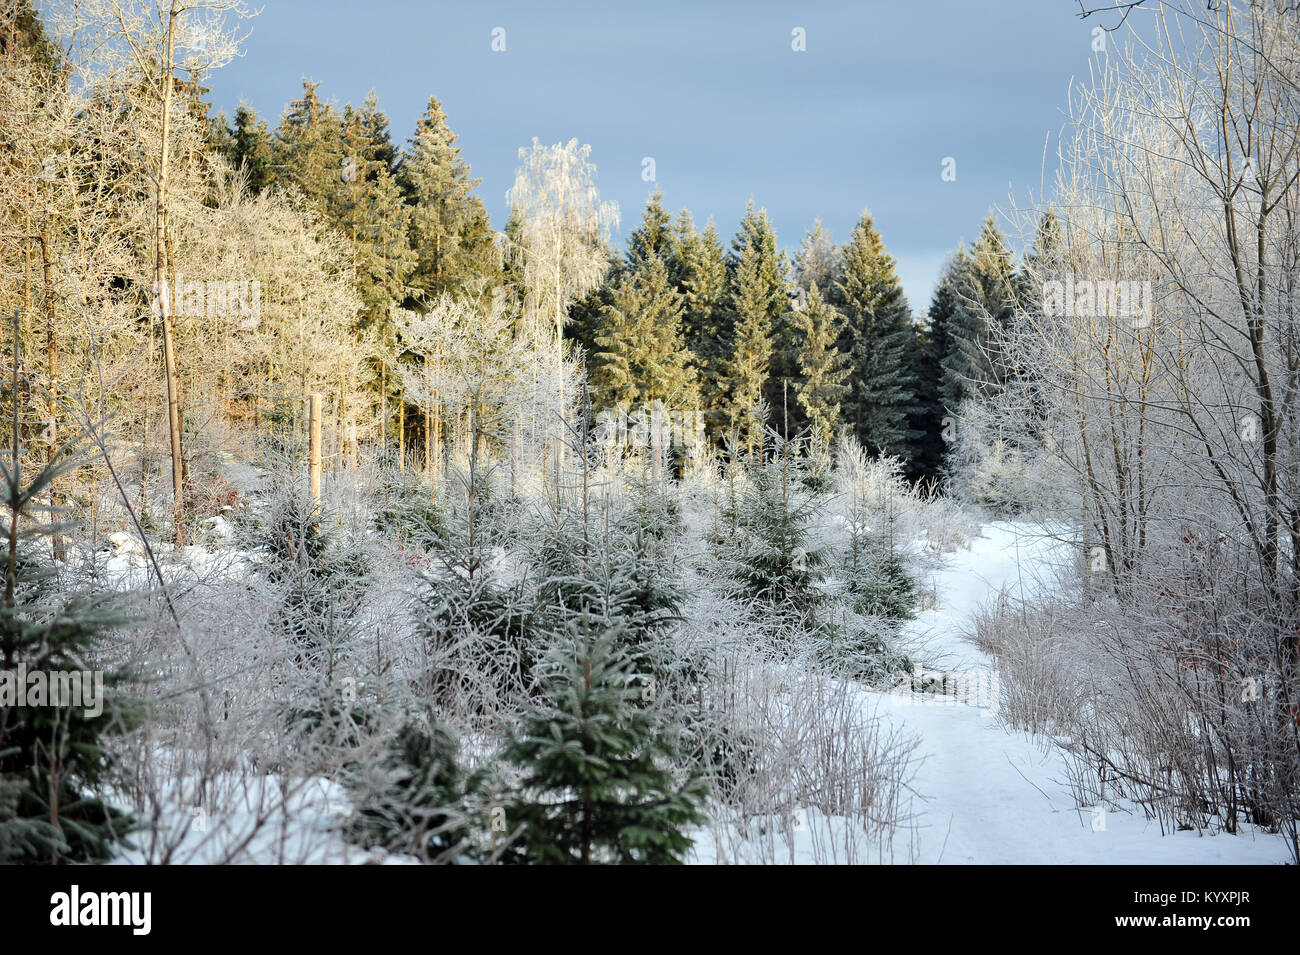 Natural forest with Christmas trees on sunny winter day. Frost covered spruces. - Stock Image